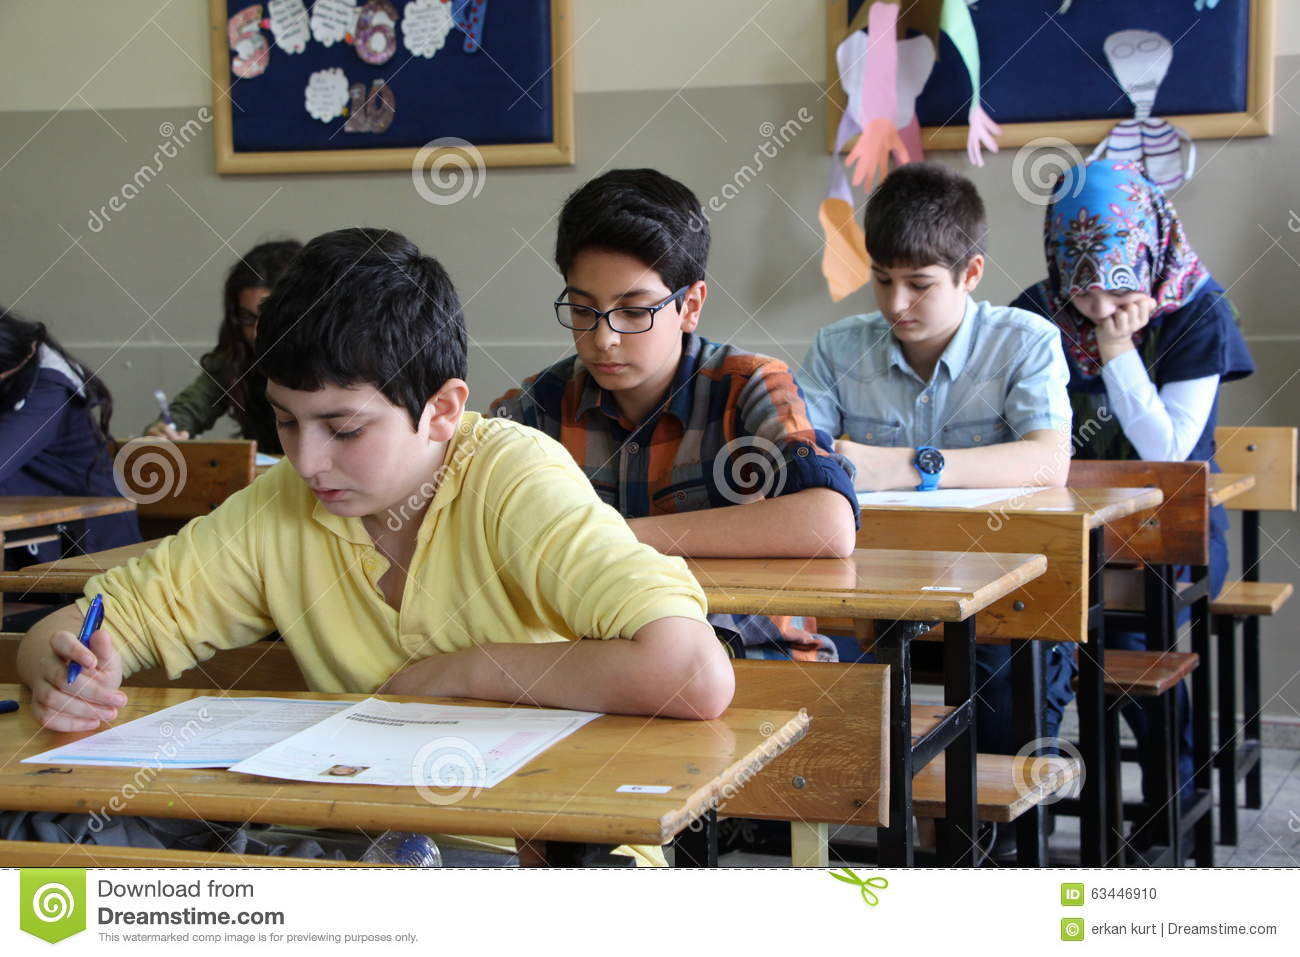 group of high school students taking a test in classroom